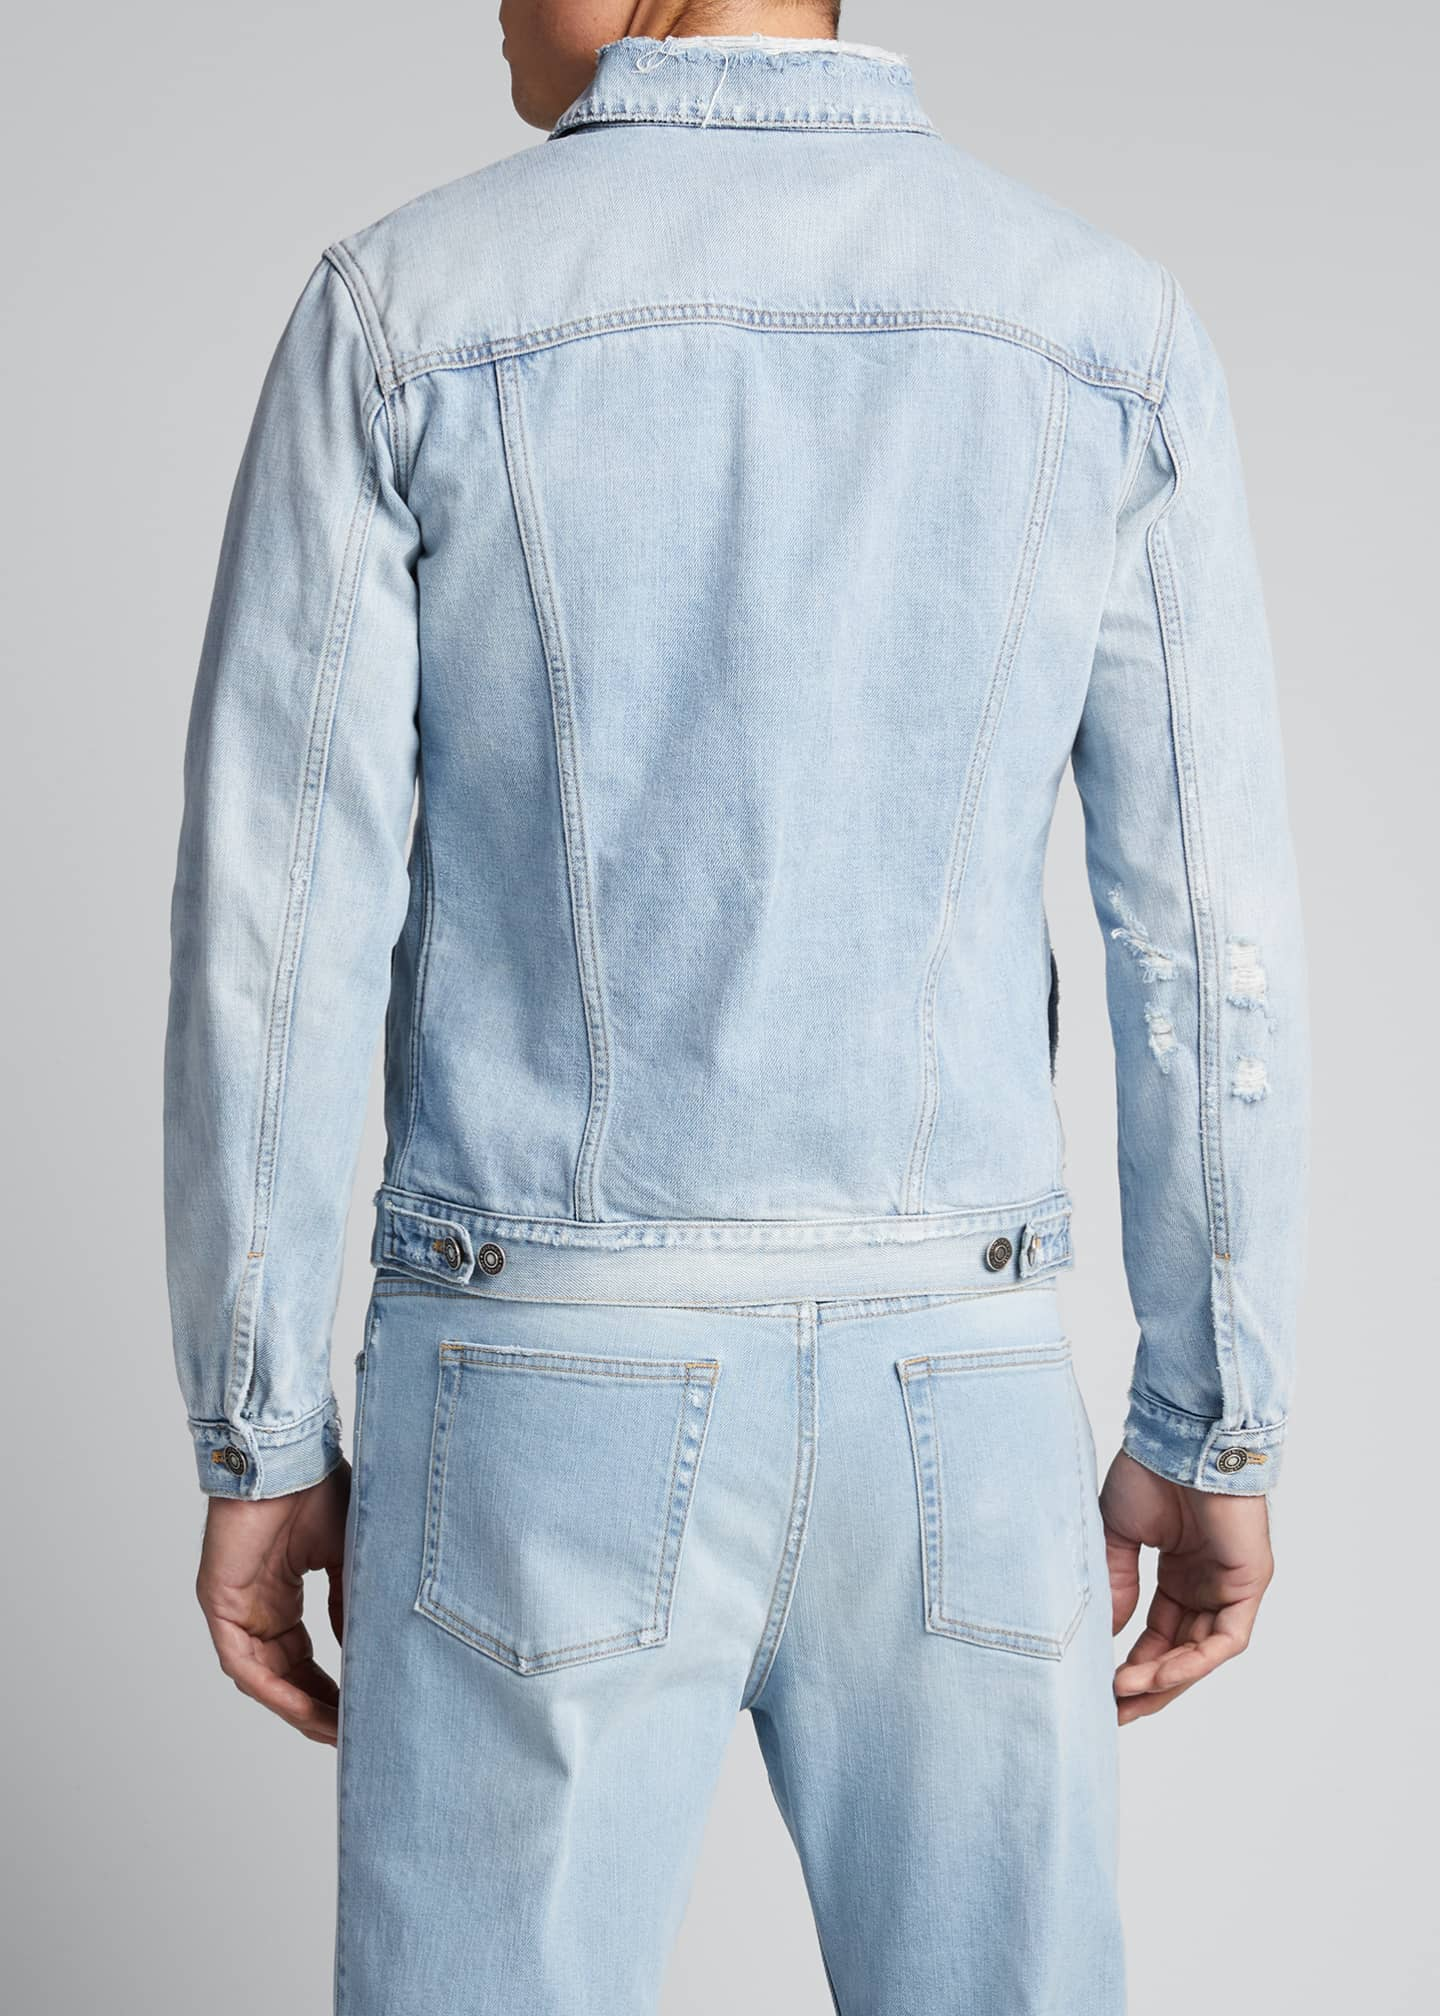 Image 2 of 4: Men's Classic-Fit Distressed Denim Jacket